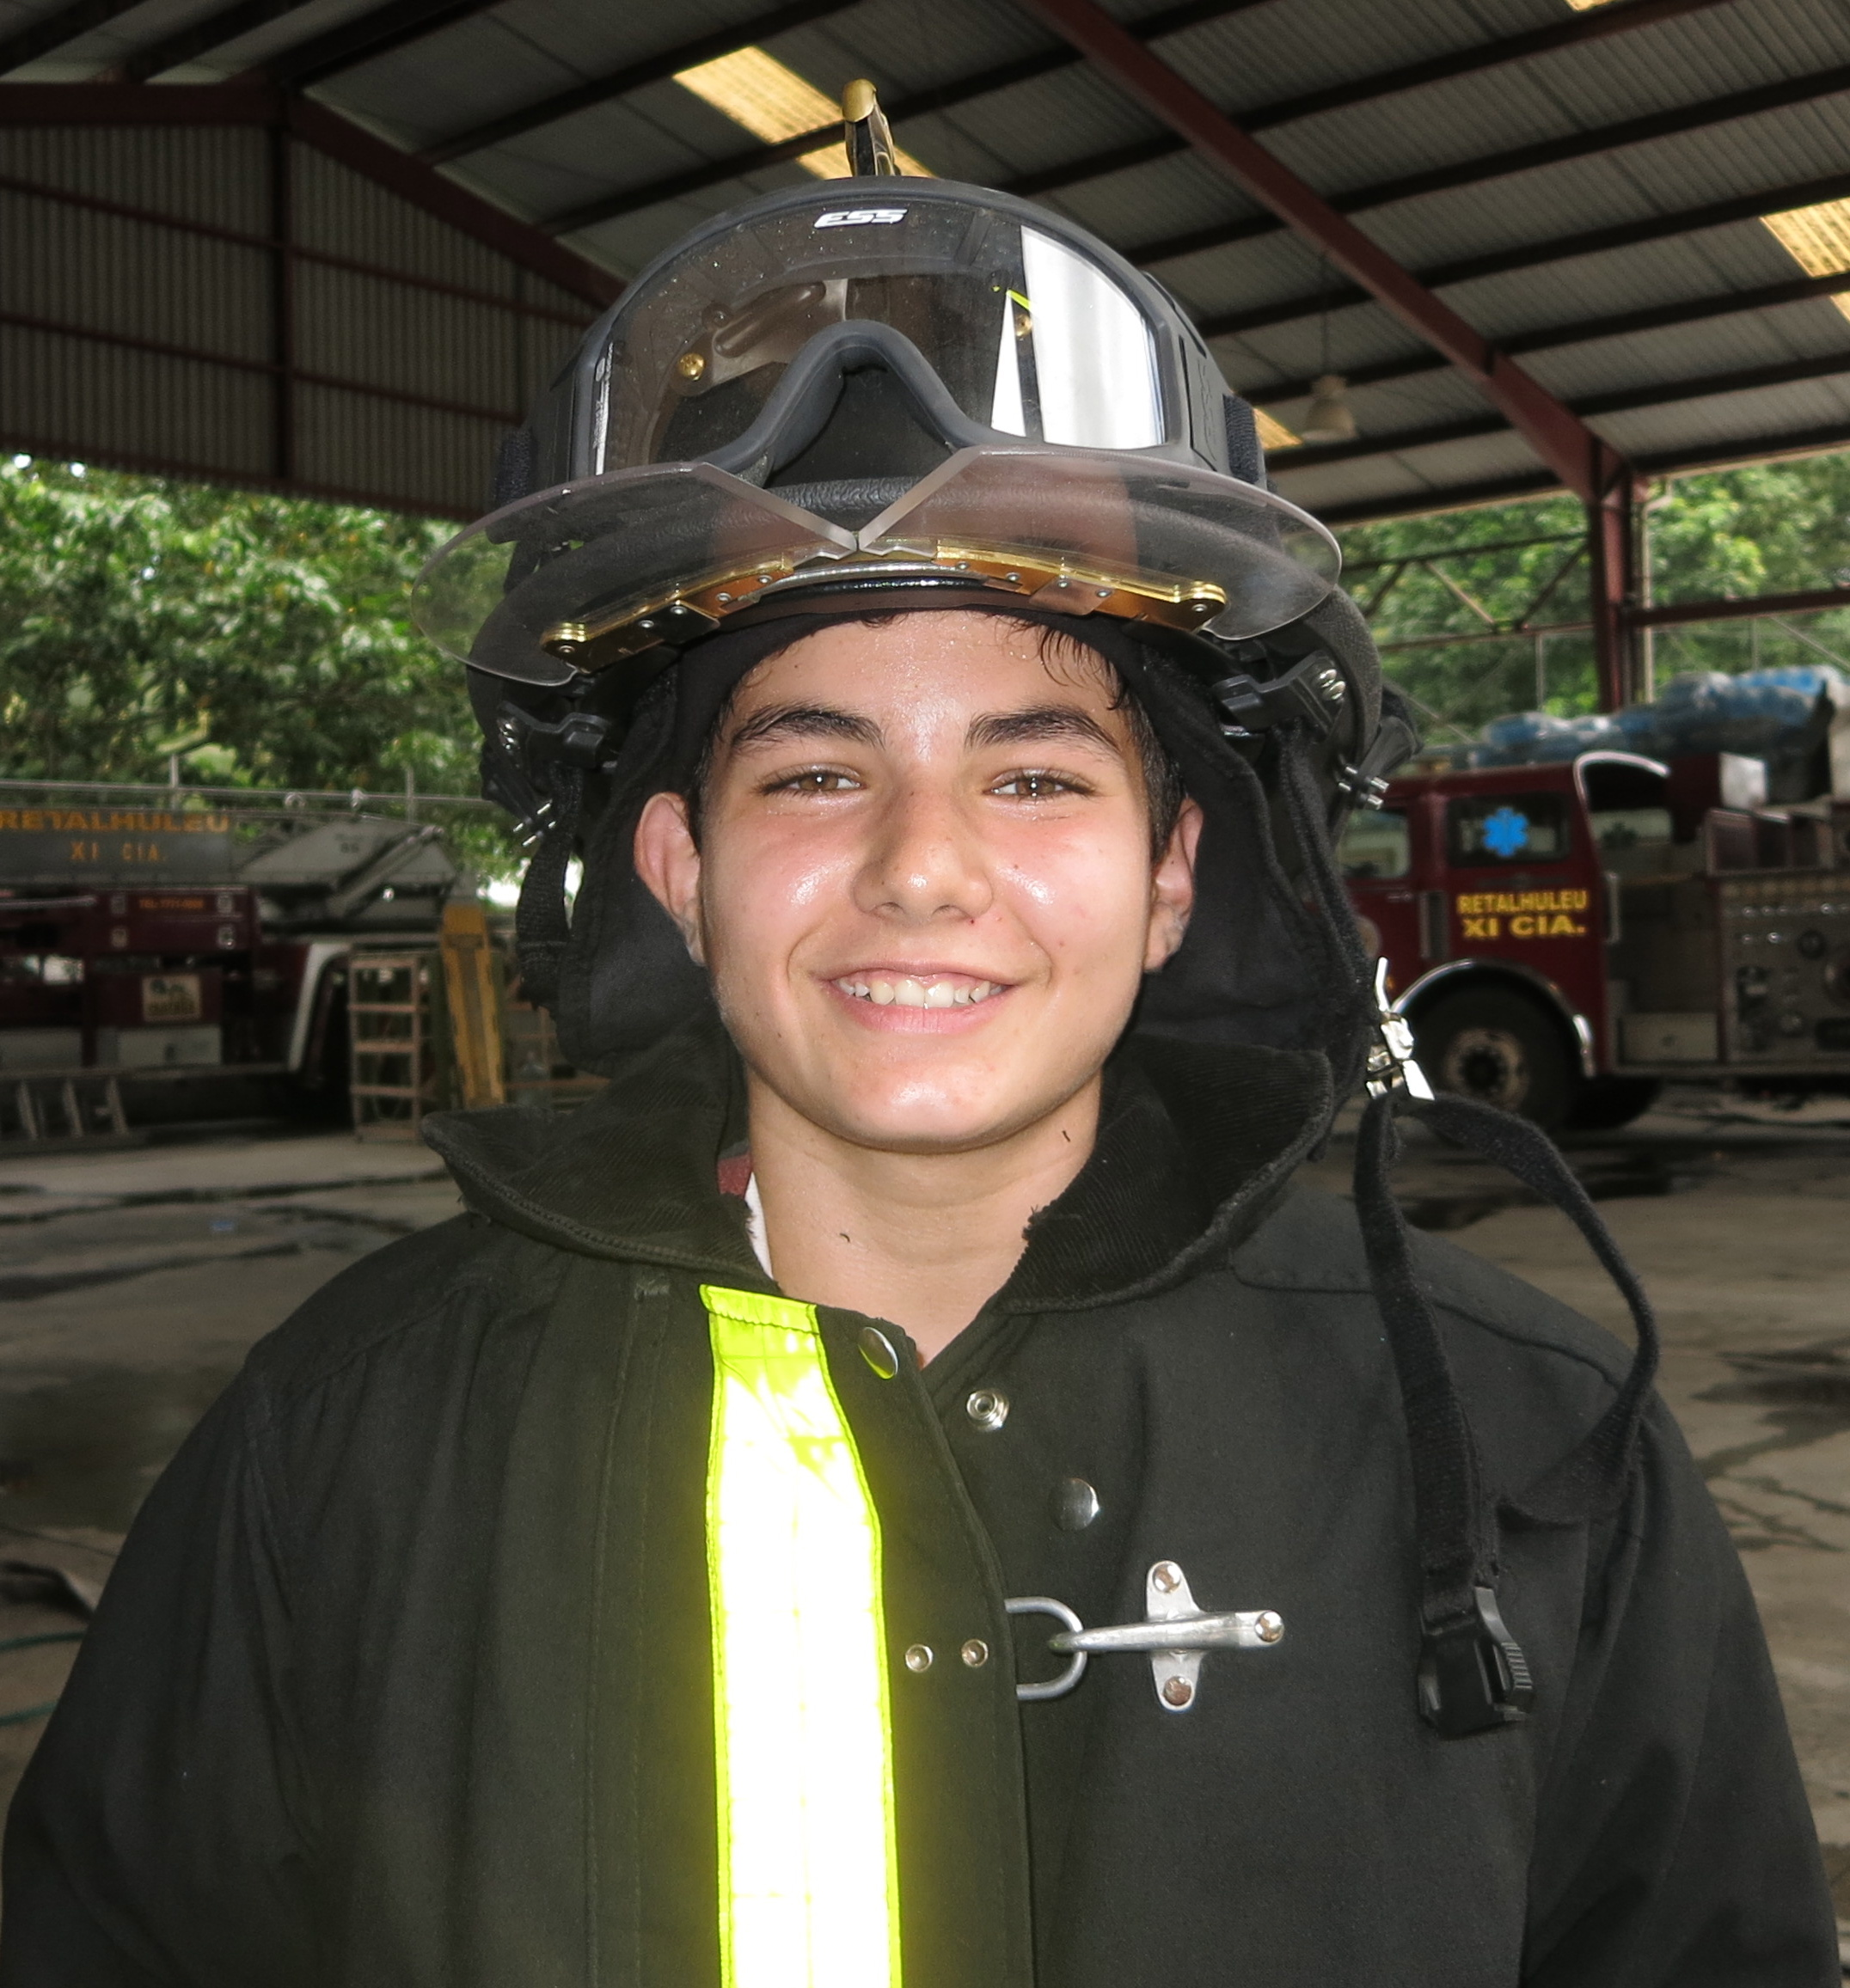 José Javier Quevedo Fernández, 14 years old, one year as a volunteer, he's in college studying medicine